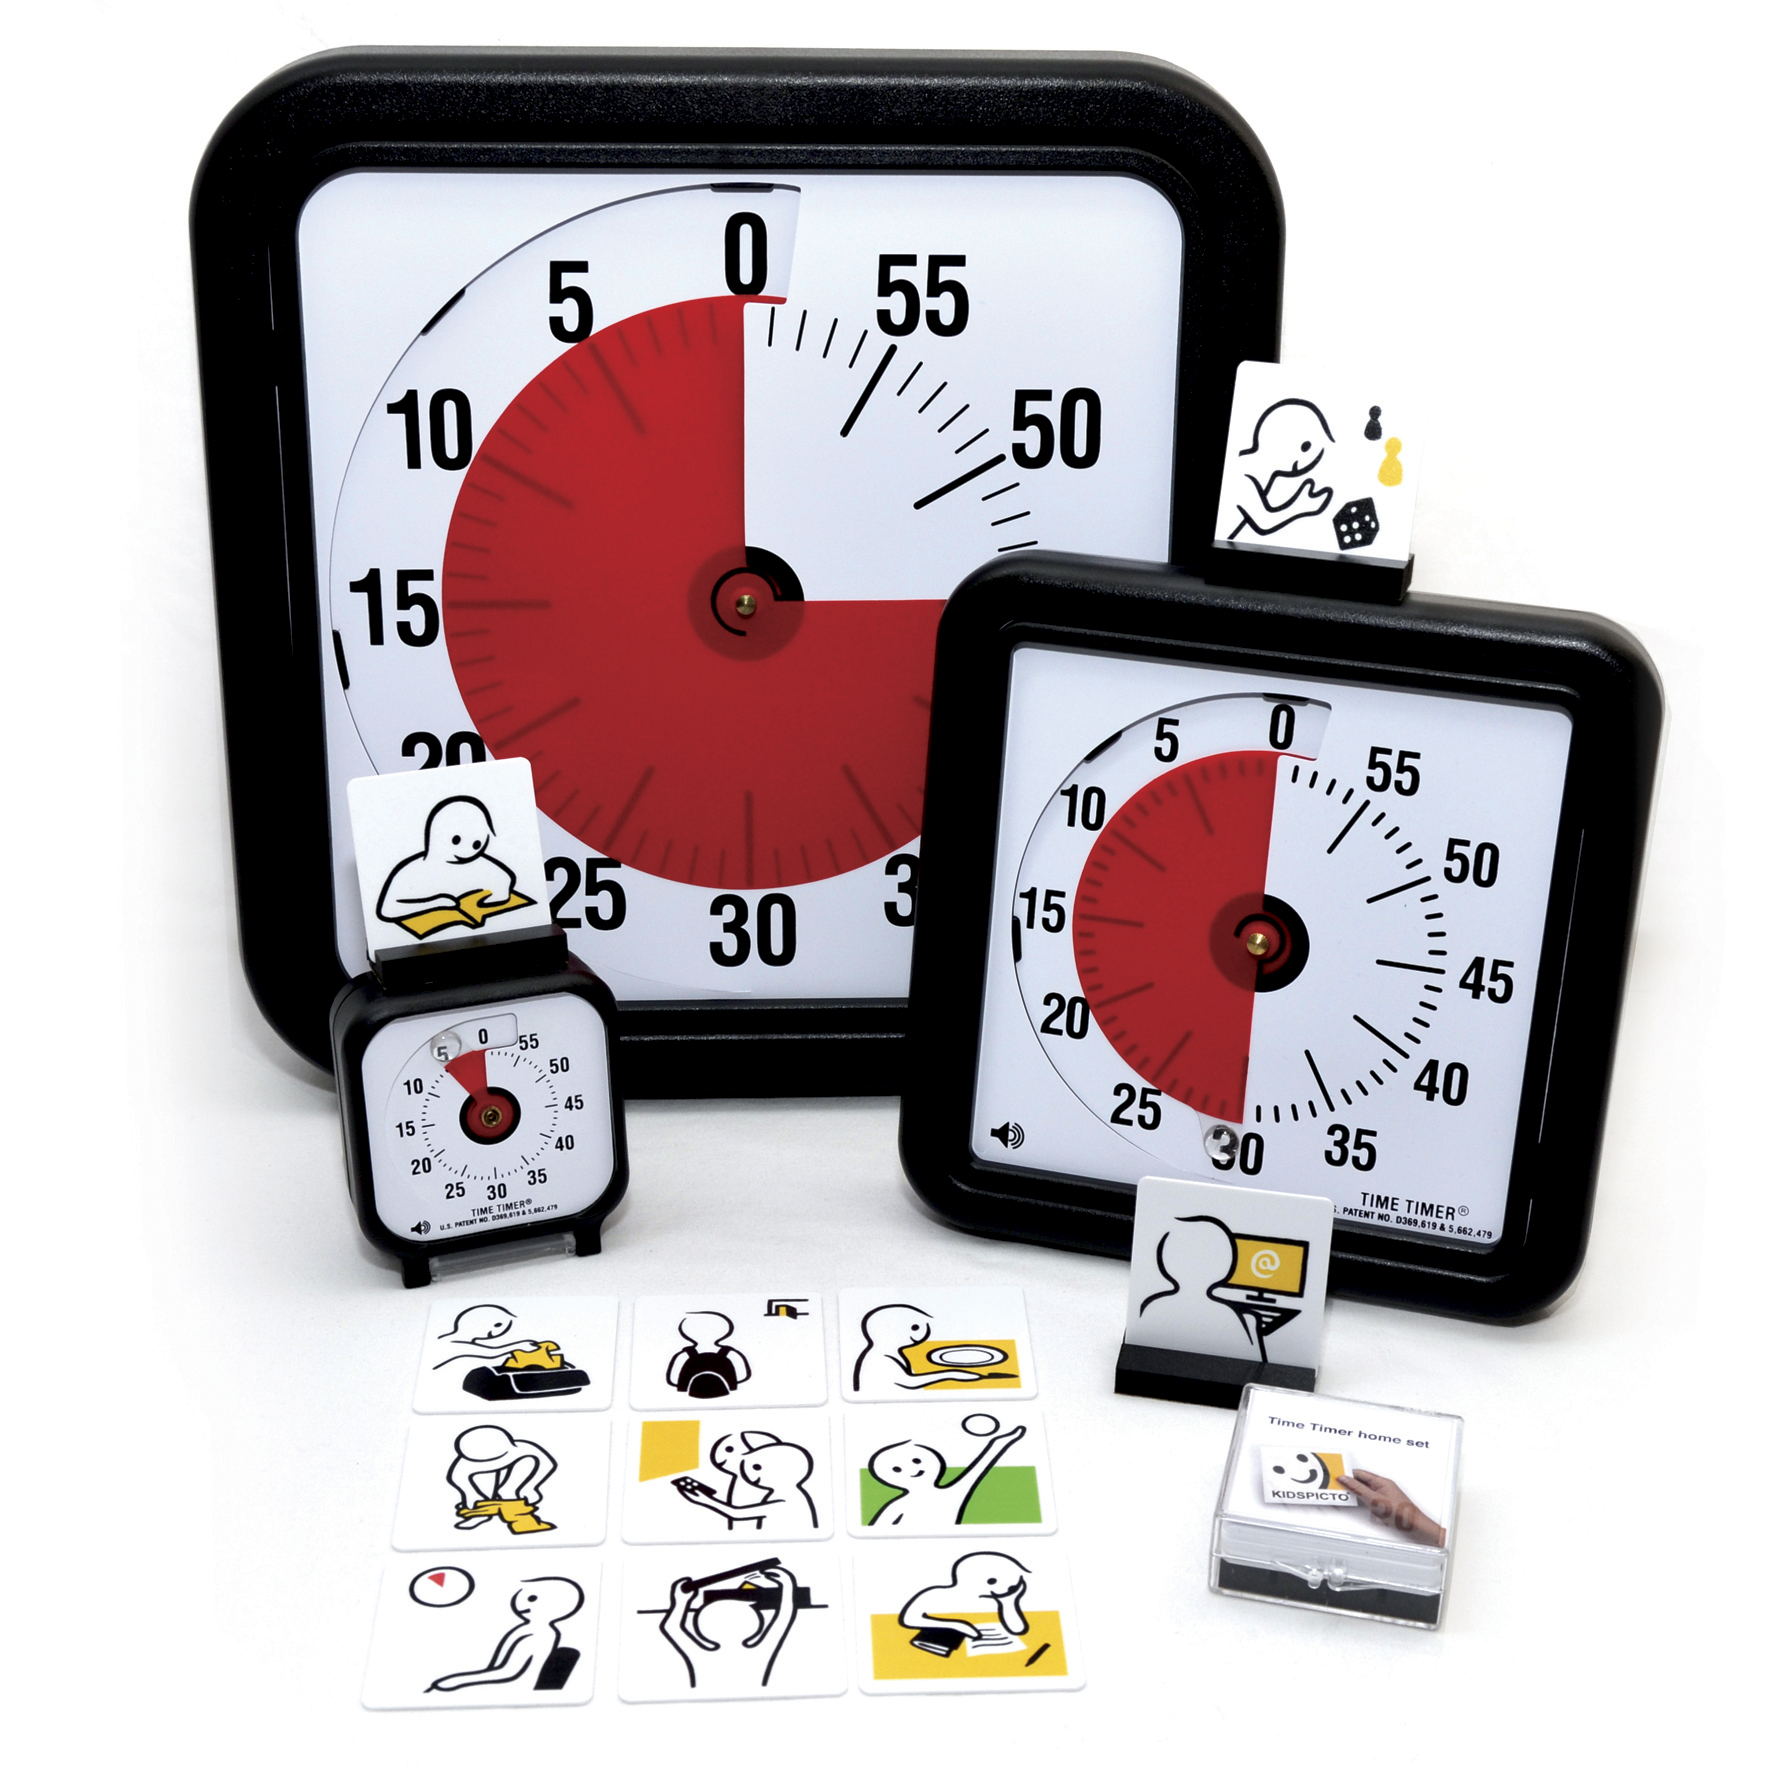 JAC5051 Time Timers with pictograms homeset